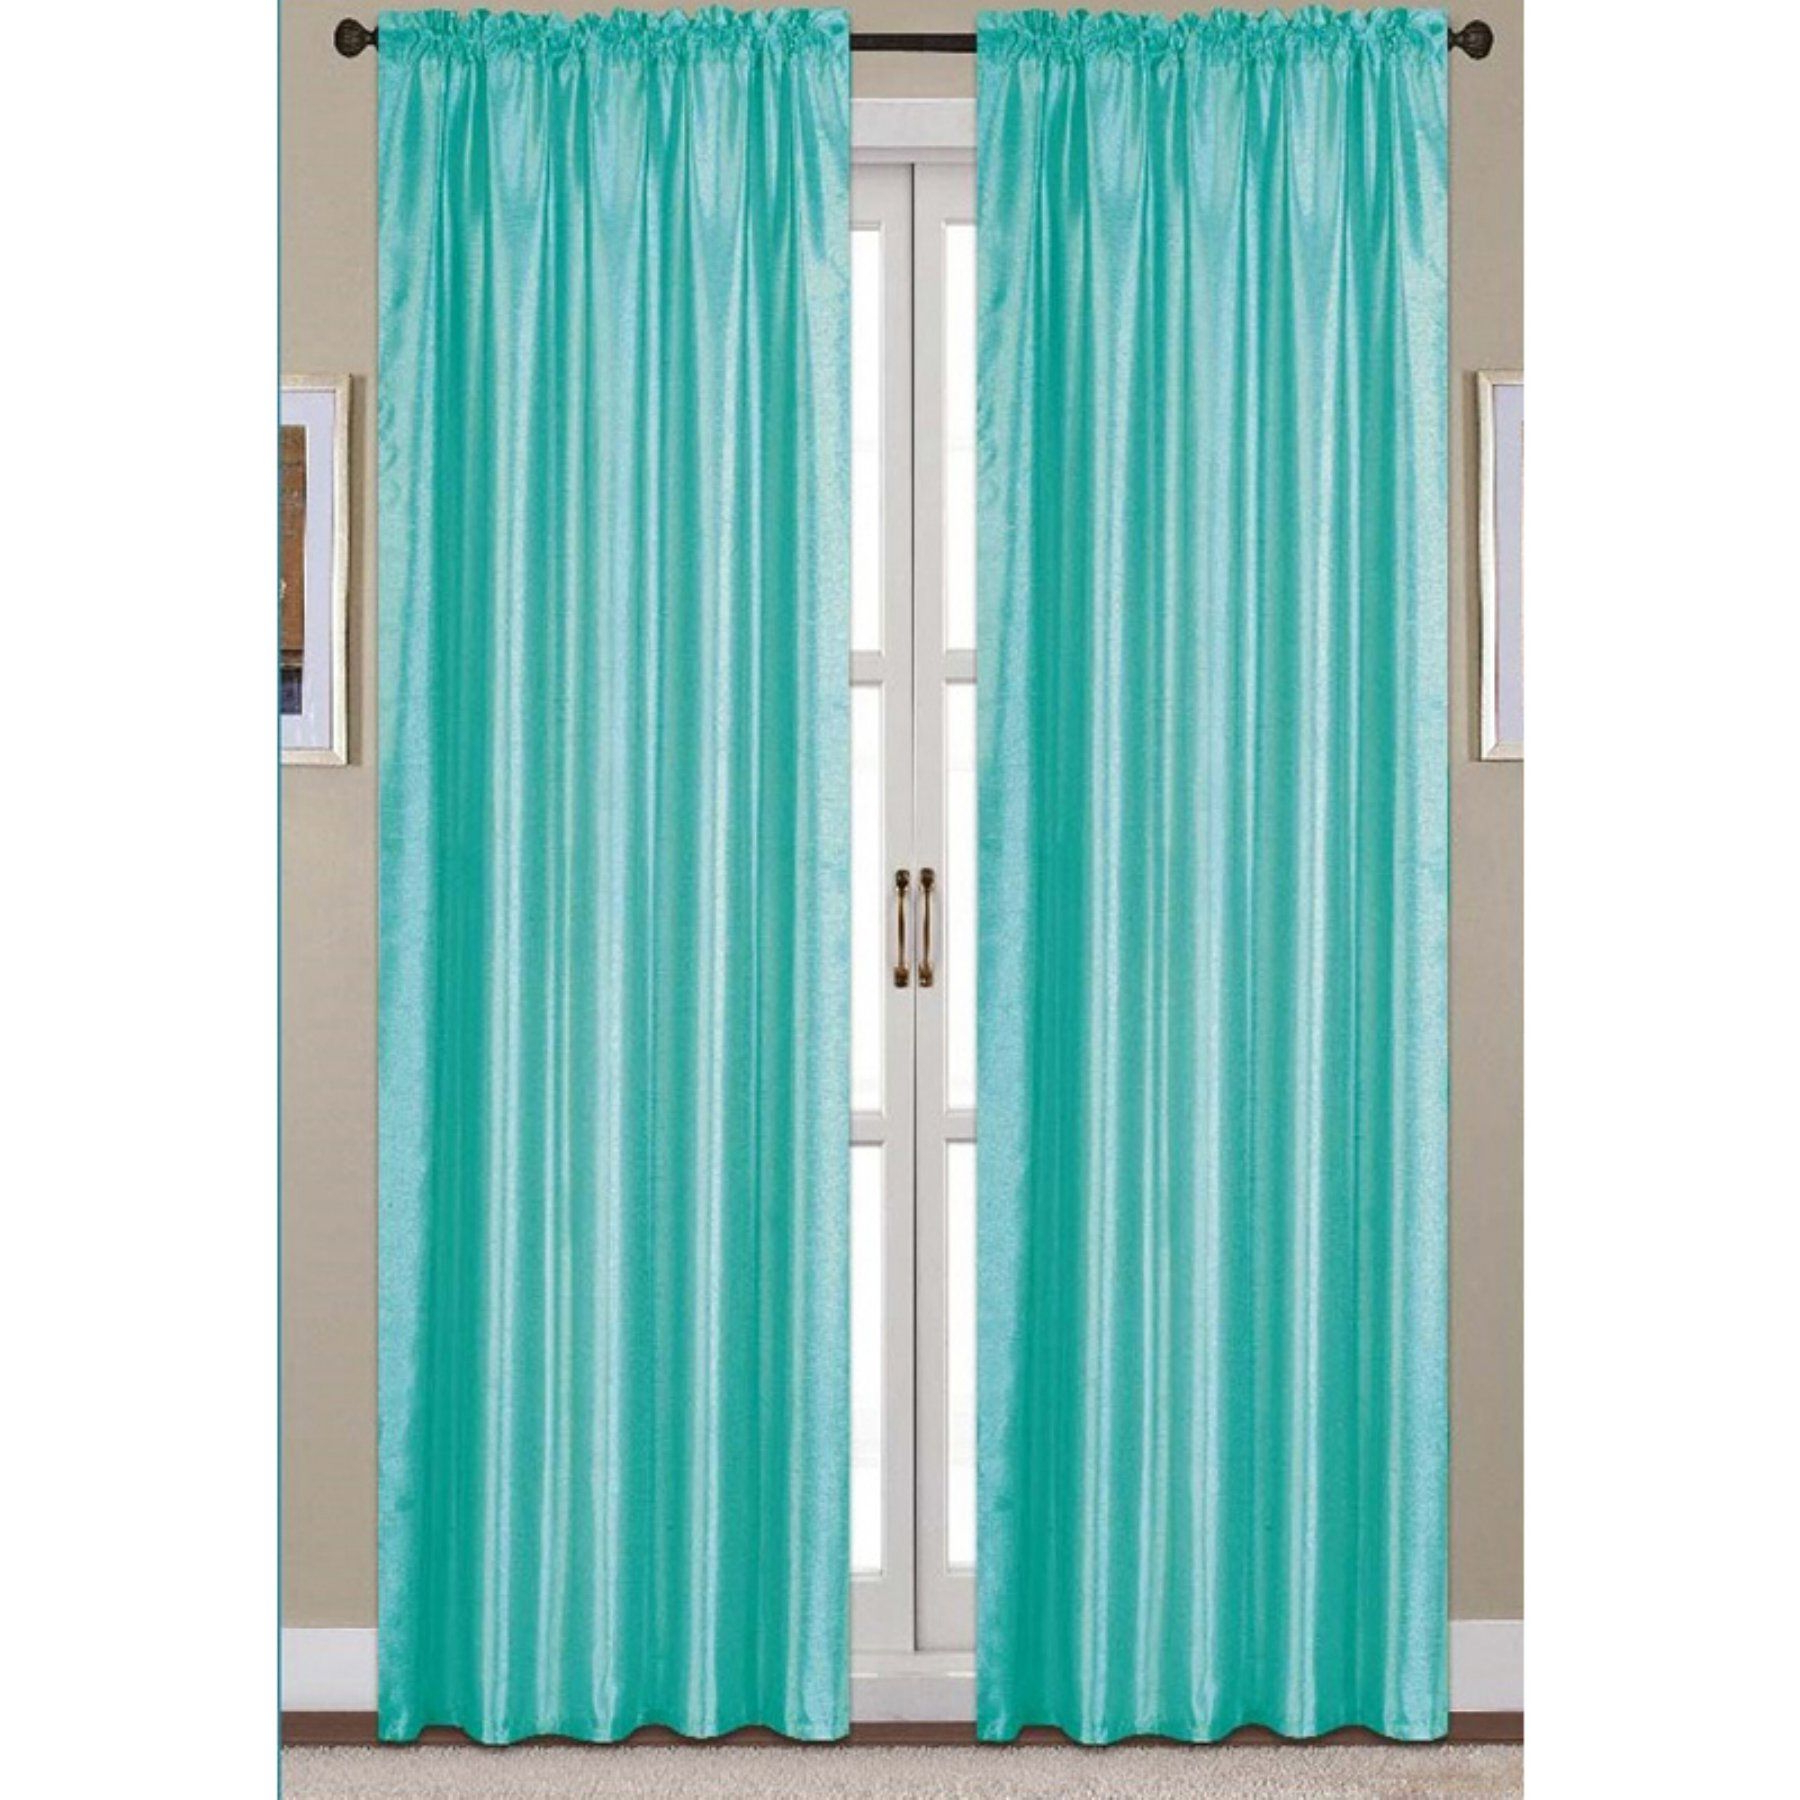 2021 The Curated Nomad Duane Jacquard Grommet Top Curtain Panel Pairs Throughout Rt Designers Collection Nikki Faux Silk Rod Pocket Curtain (View 18 of 21)